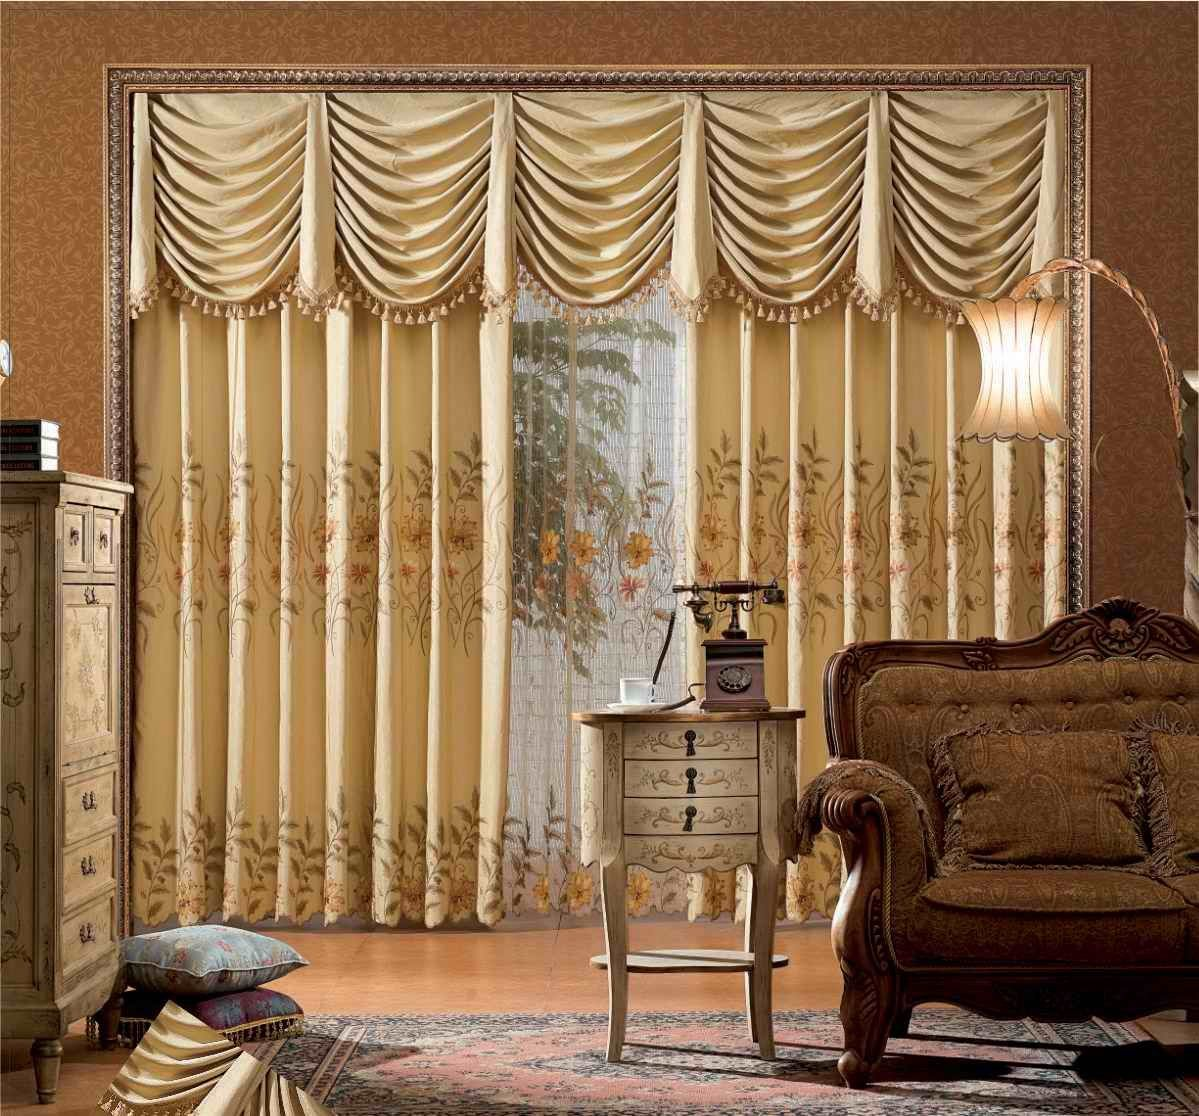 Living Room With Curtains Make Modern Living Room Curtains Http Posthomesltdcom Wp